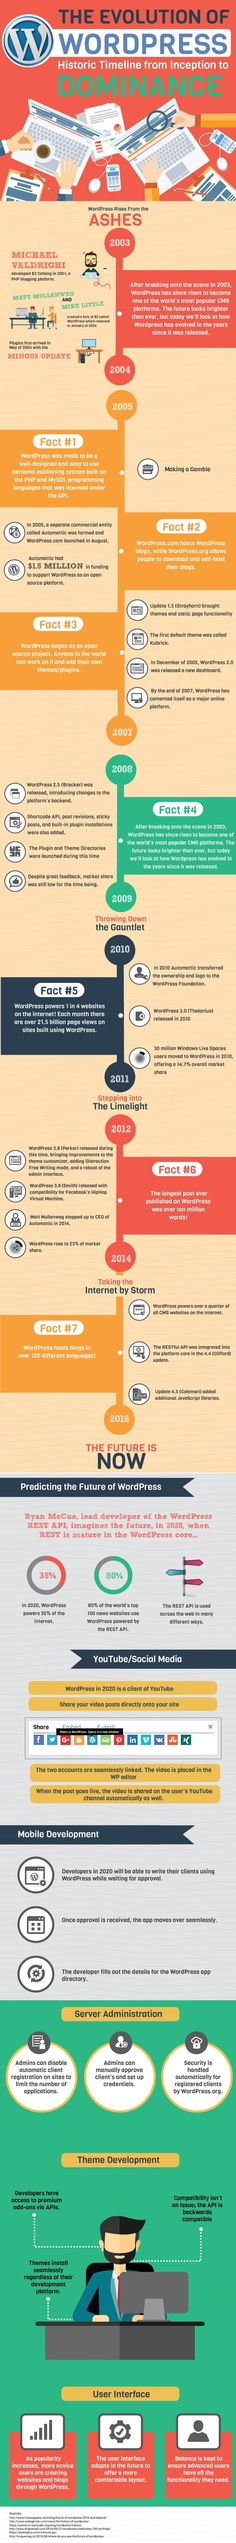 A Timeline of WordPress - #infographic